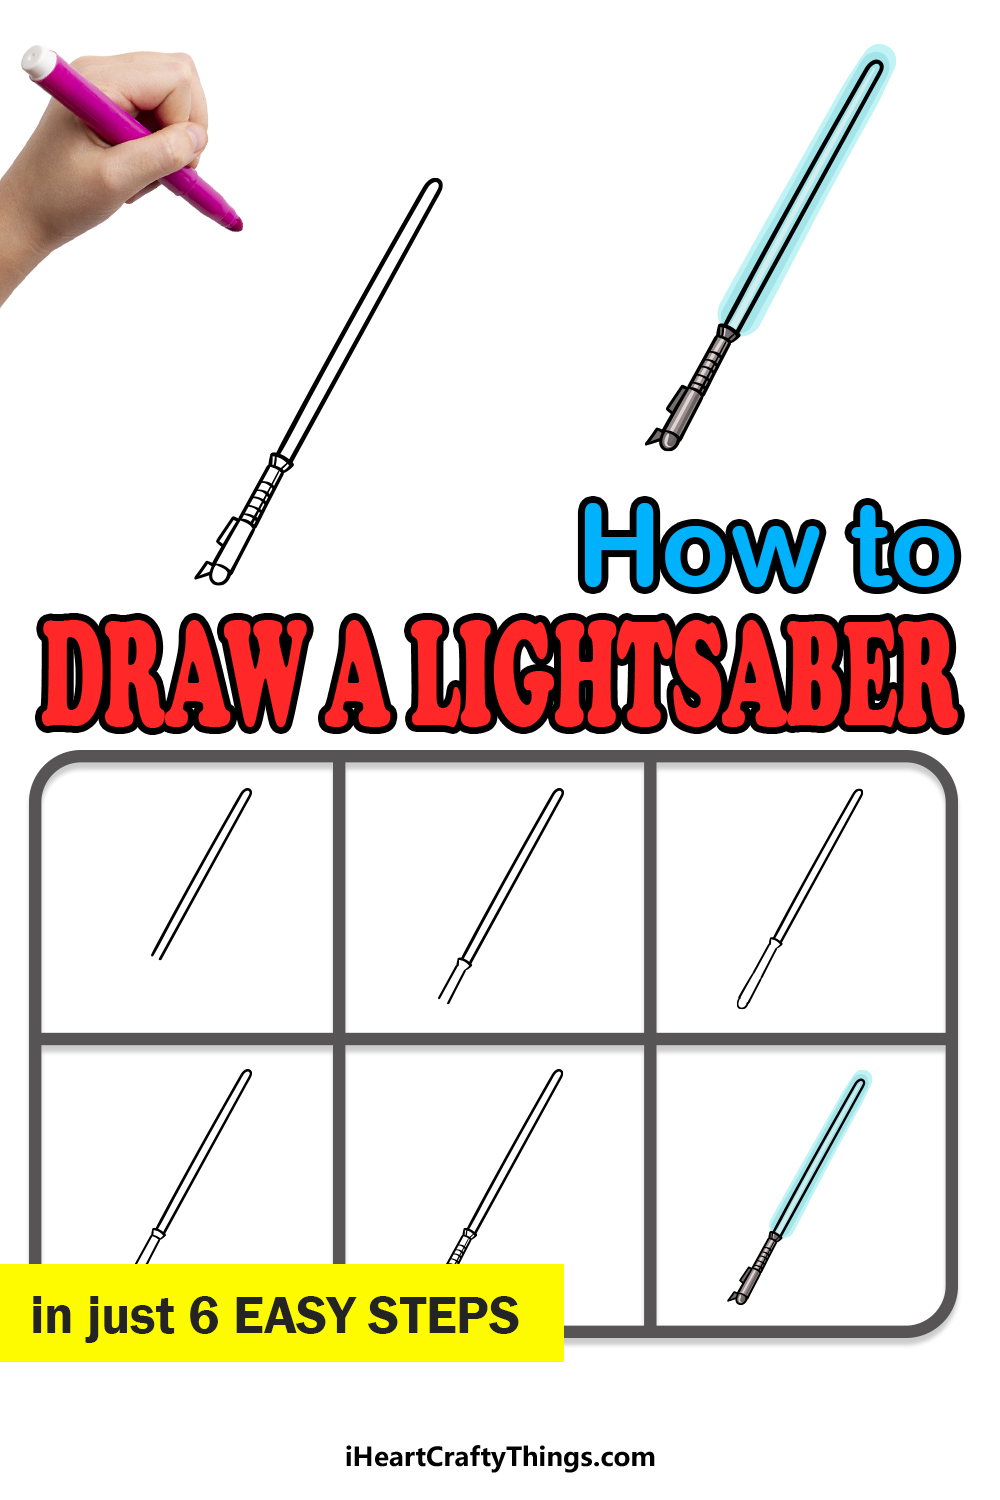 how to draw a lightsaber in 6 easy steps